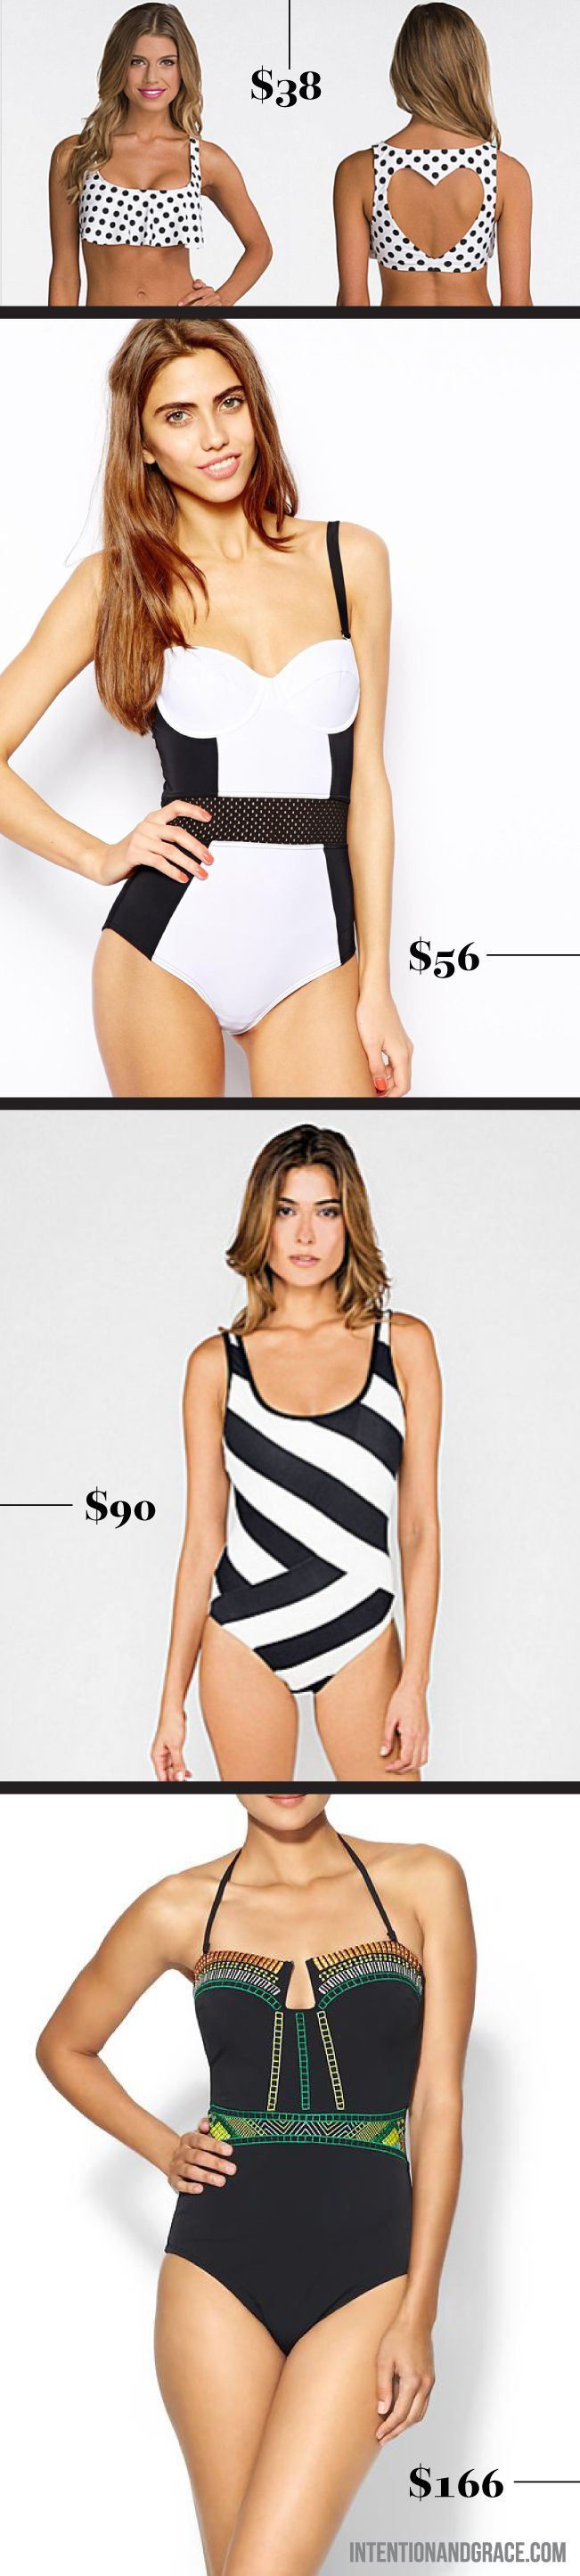 2014 Swimsuit trends for summe. Going for a One Piece, Tankini or Bikini, here are some great options.  |  Intentionandgrace.com